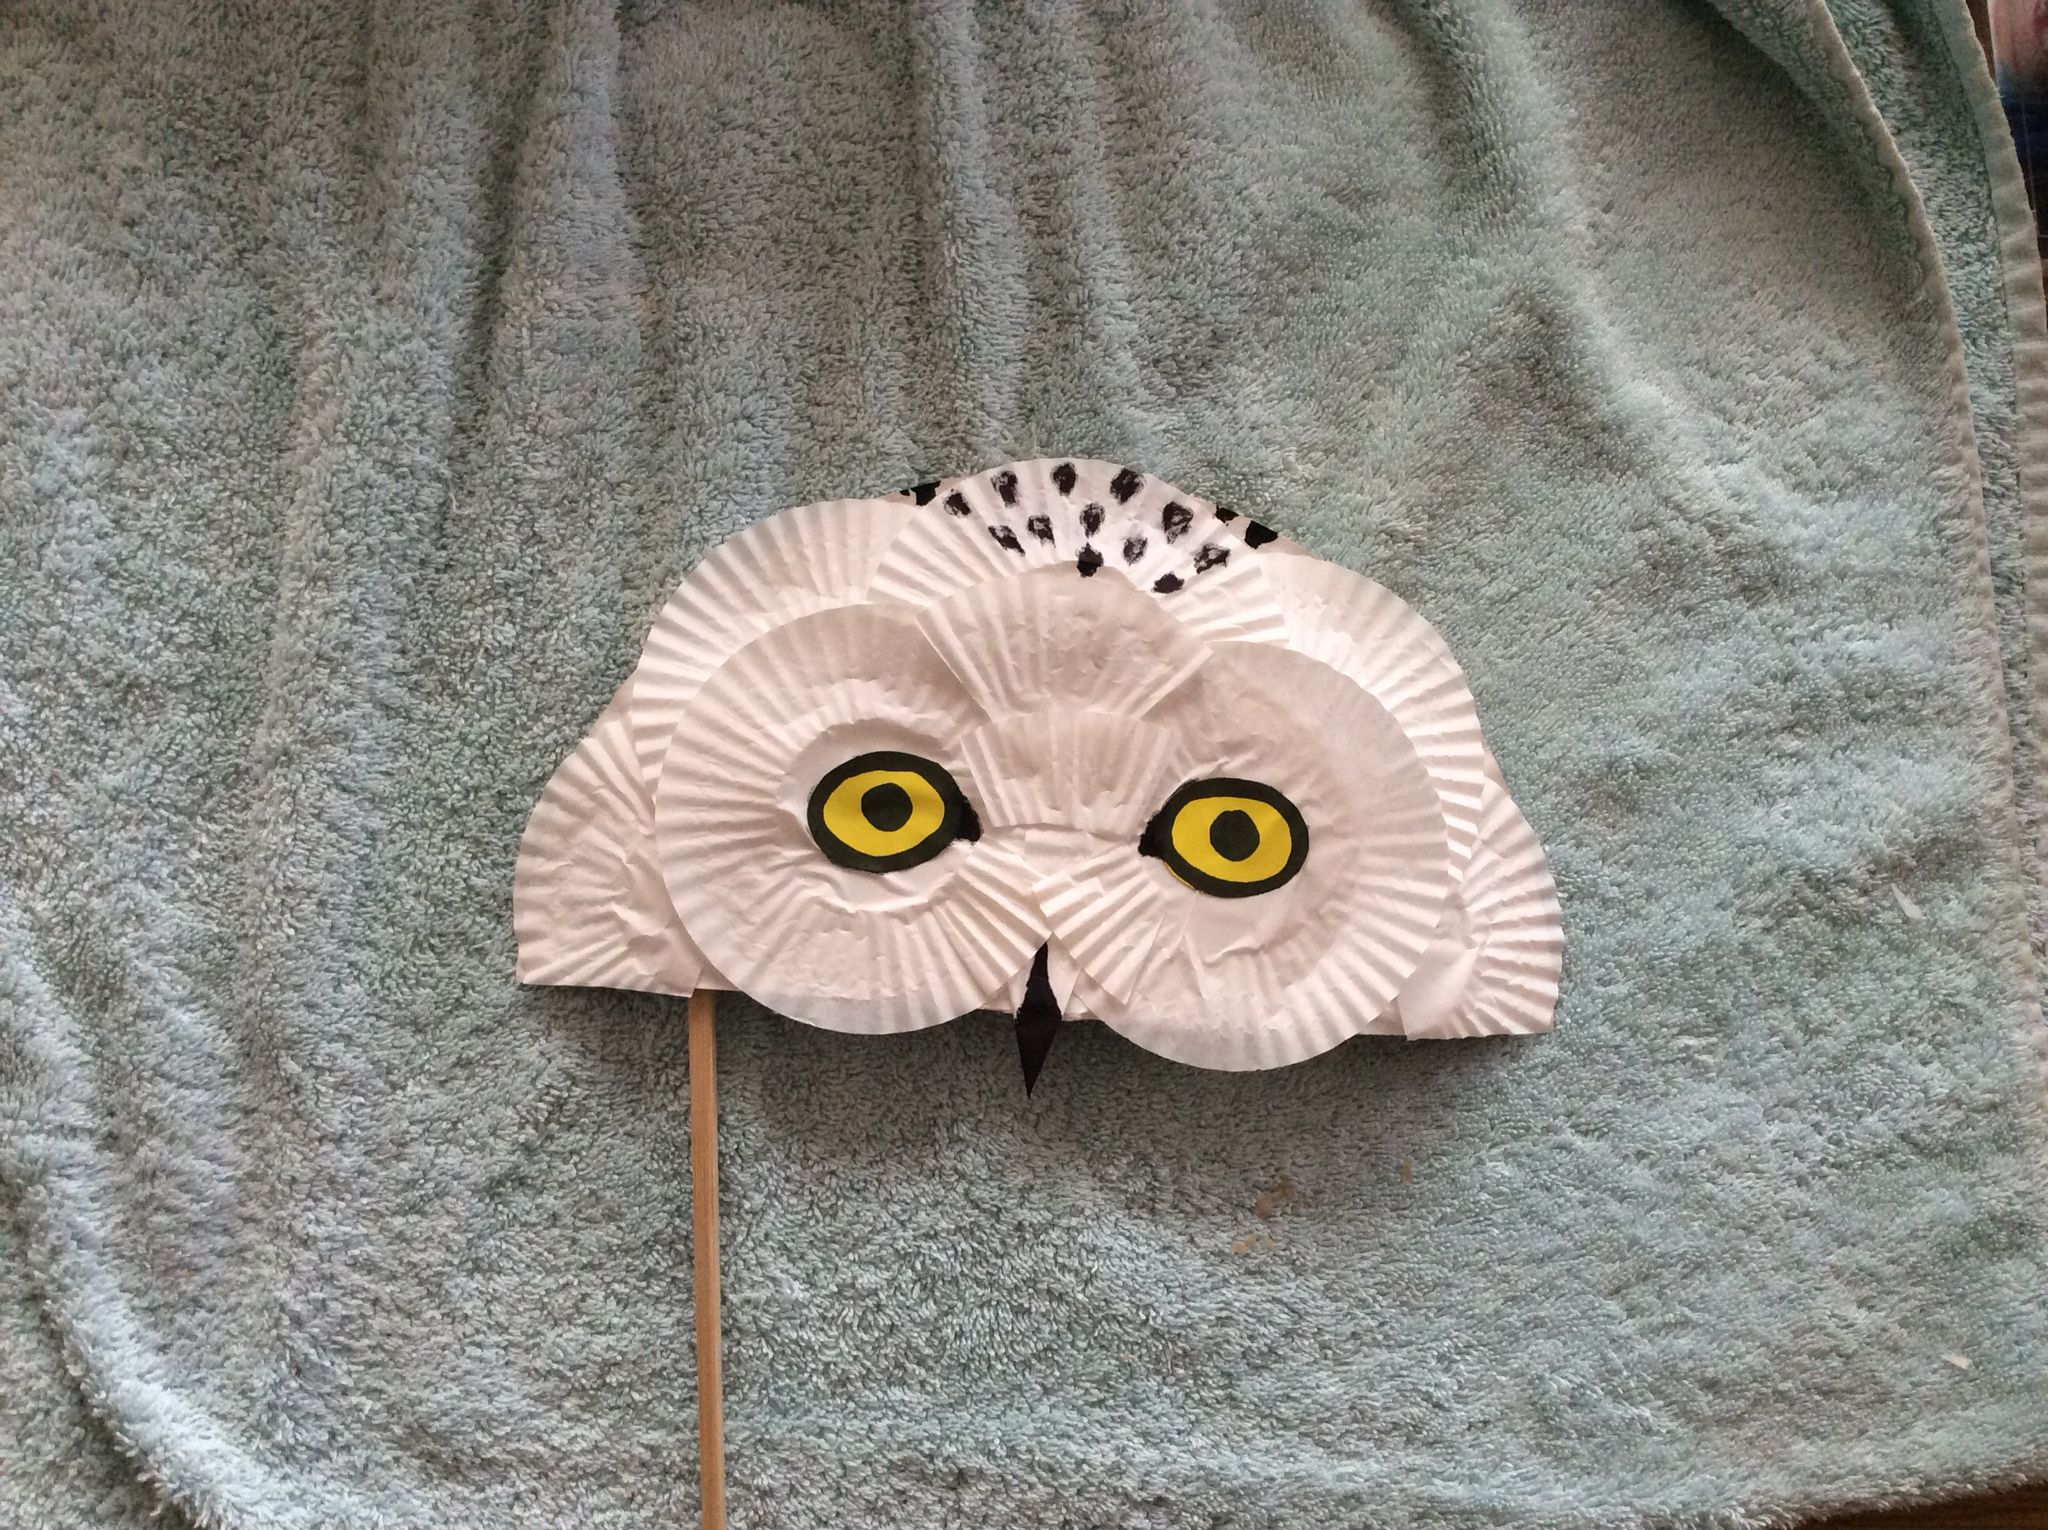 Snowy owl mask. Made from half a paper plate and several cup cake or patty cake cases and simply glued into suitable configuration. & Snowy owl mask. Made from half a paper plate and several cup cake or ...